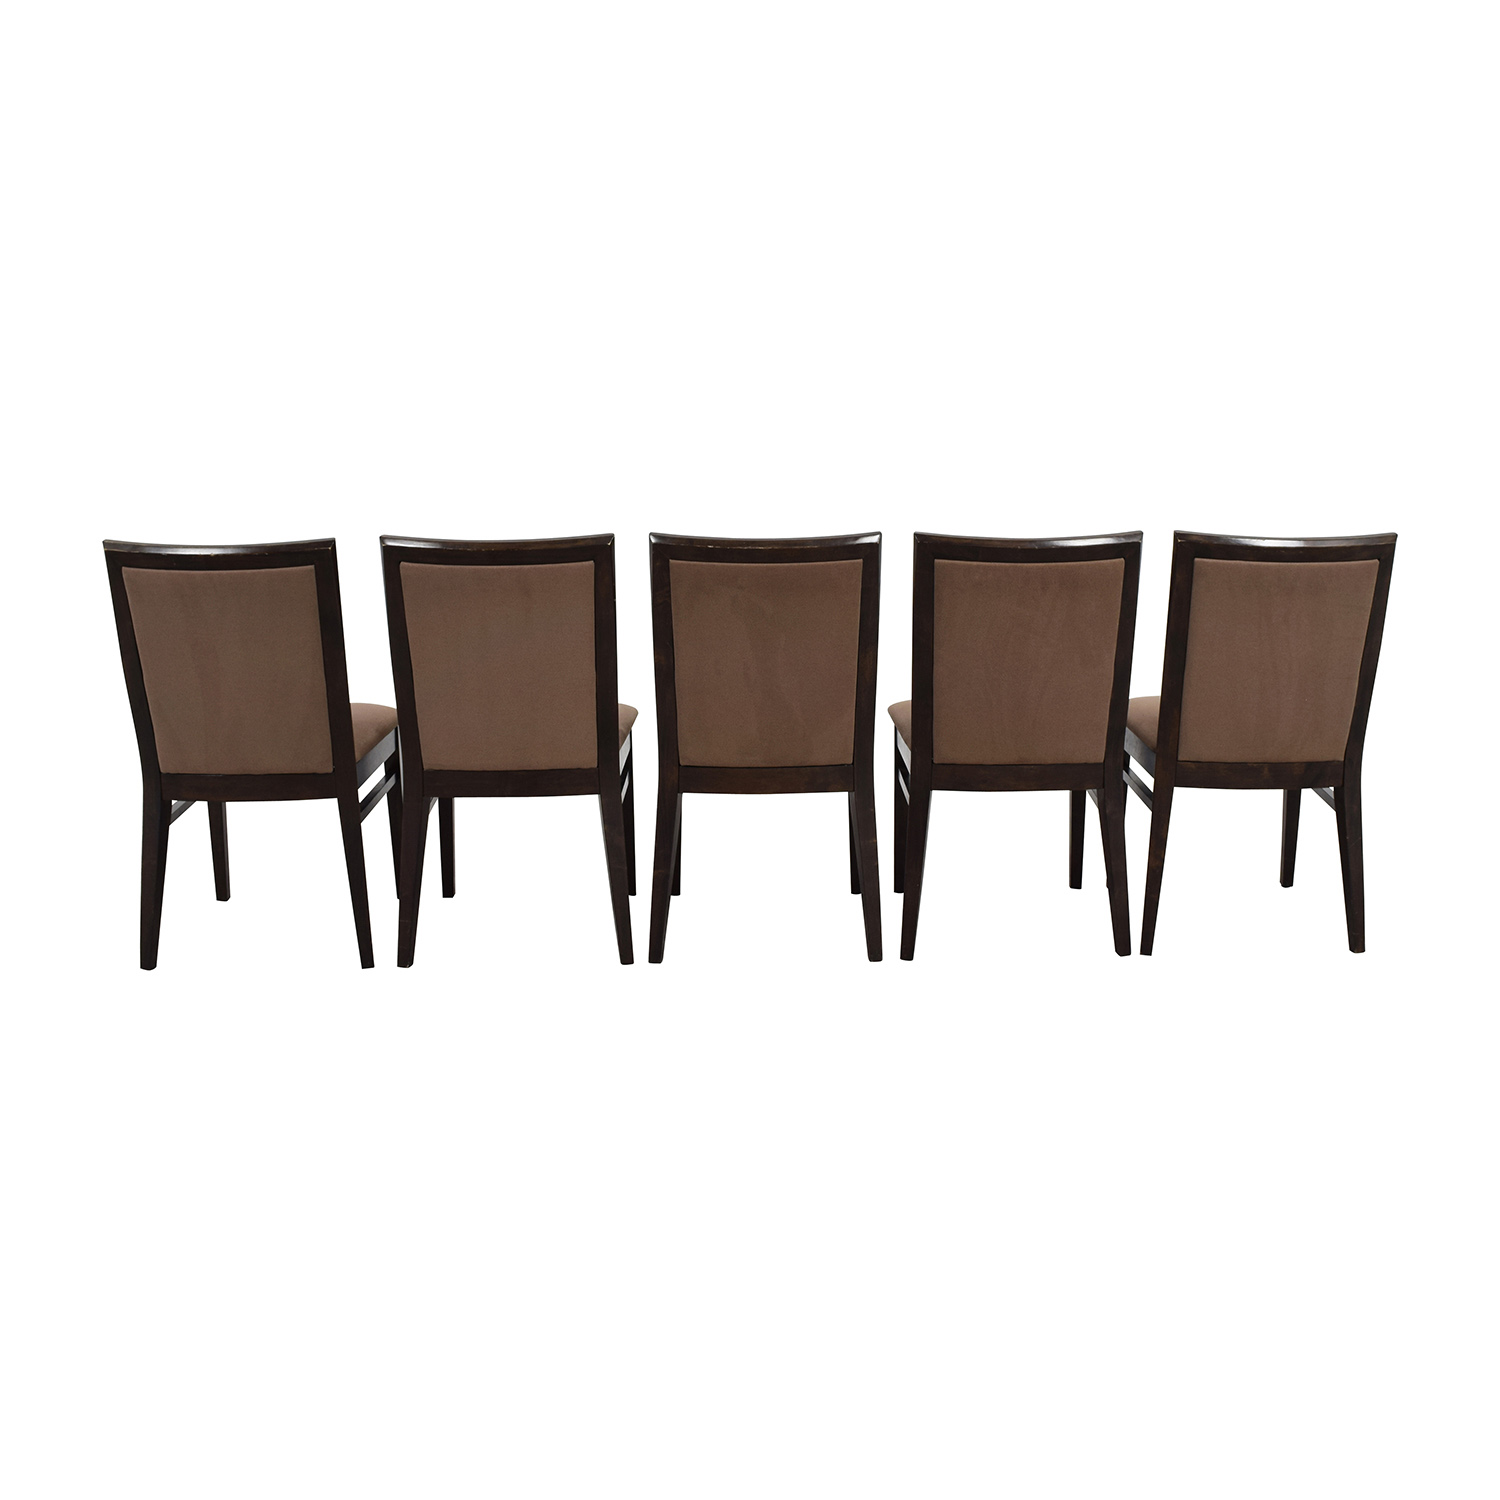 Context Context Mahogany Brown Upholstered Dining Chairs nj